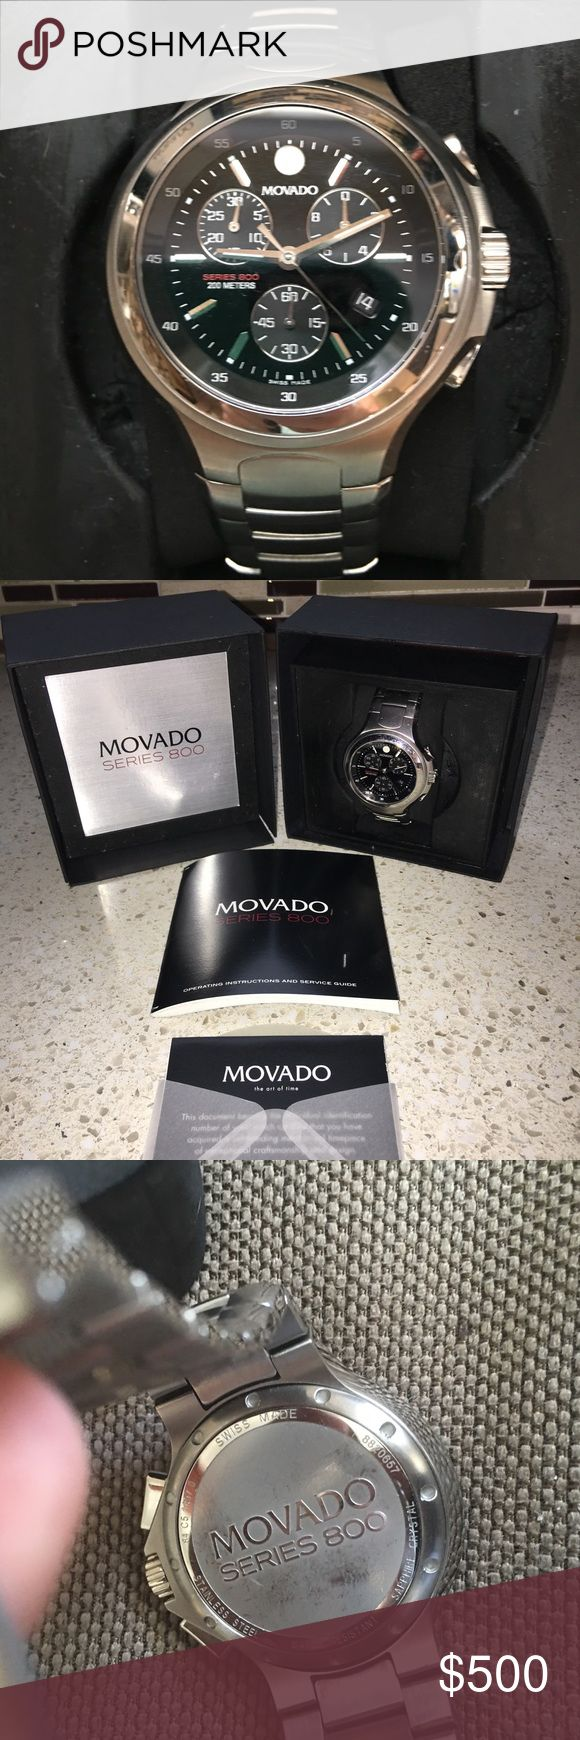 "Movado Series 800 Men's Chronograph Quartz Watch PREOWNED Gently loved Movado Series 800 stainless steel, Swiss chronograph for men has a large, round watch case that is made from performance steel--a higher grade of stainless steel that provides excellent durability & strength. 7"" adjustable bracelet. Other features include a sapphire glass crystal for optimal scratch resistance, screw down crown for maximum protection, and water resistance to 200 meters.   Plastic protective covering still…"